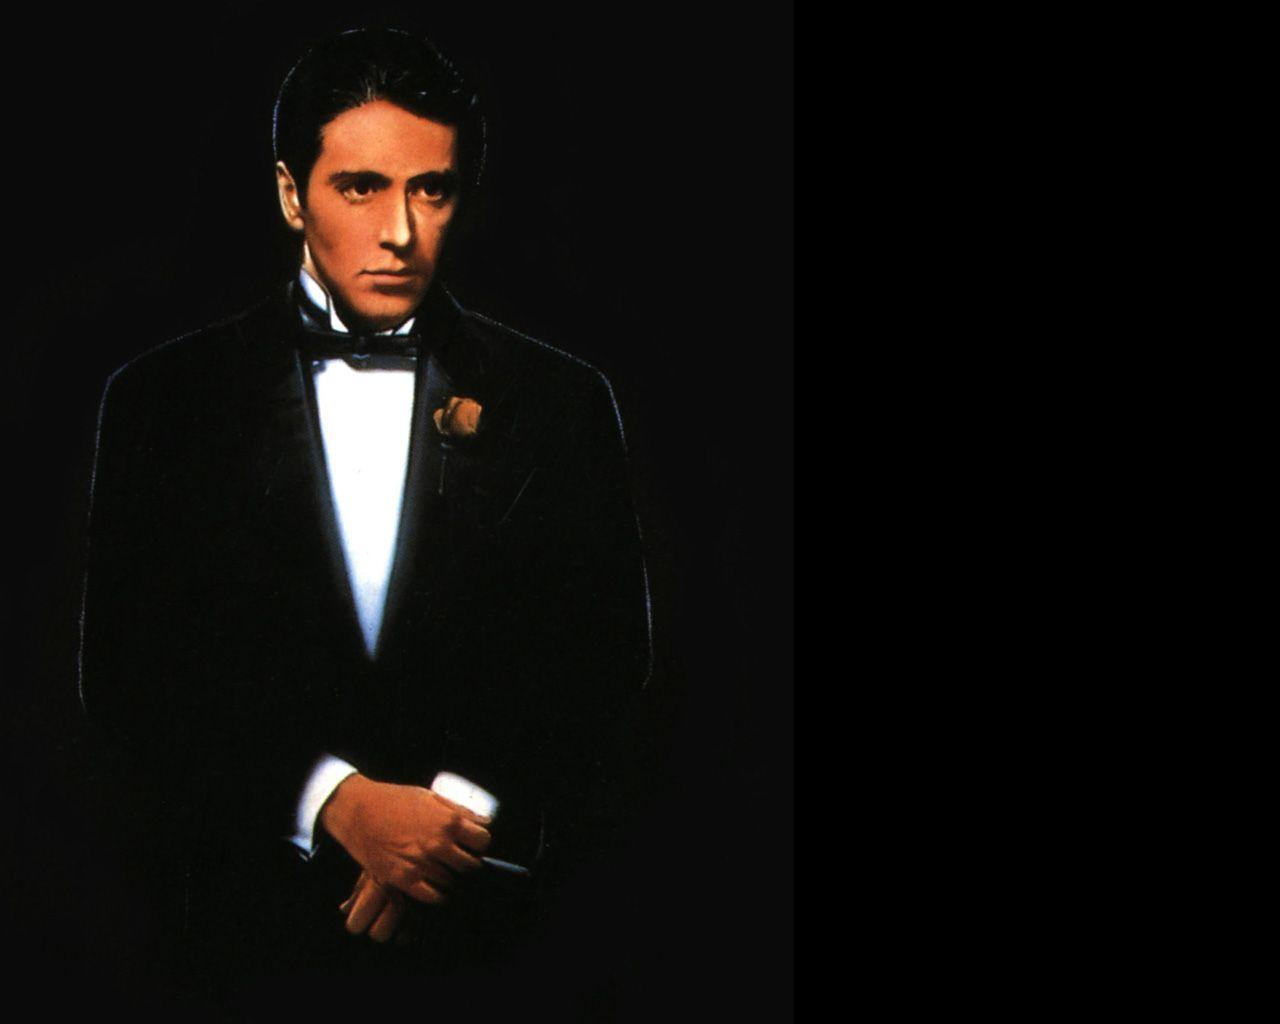 The Godfather HD Wallpaper Backgrounds Wallpapers 1280x1024